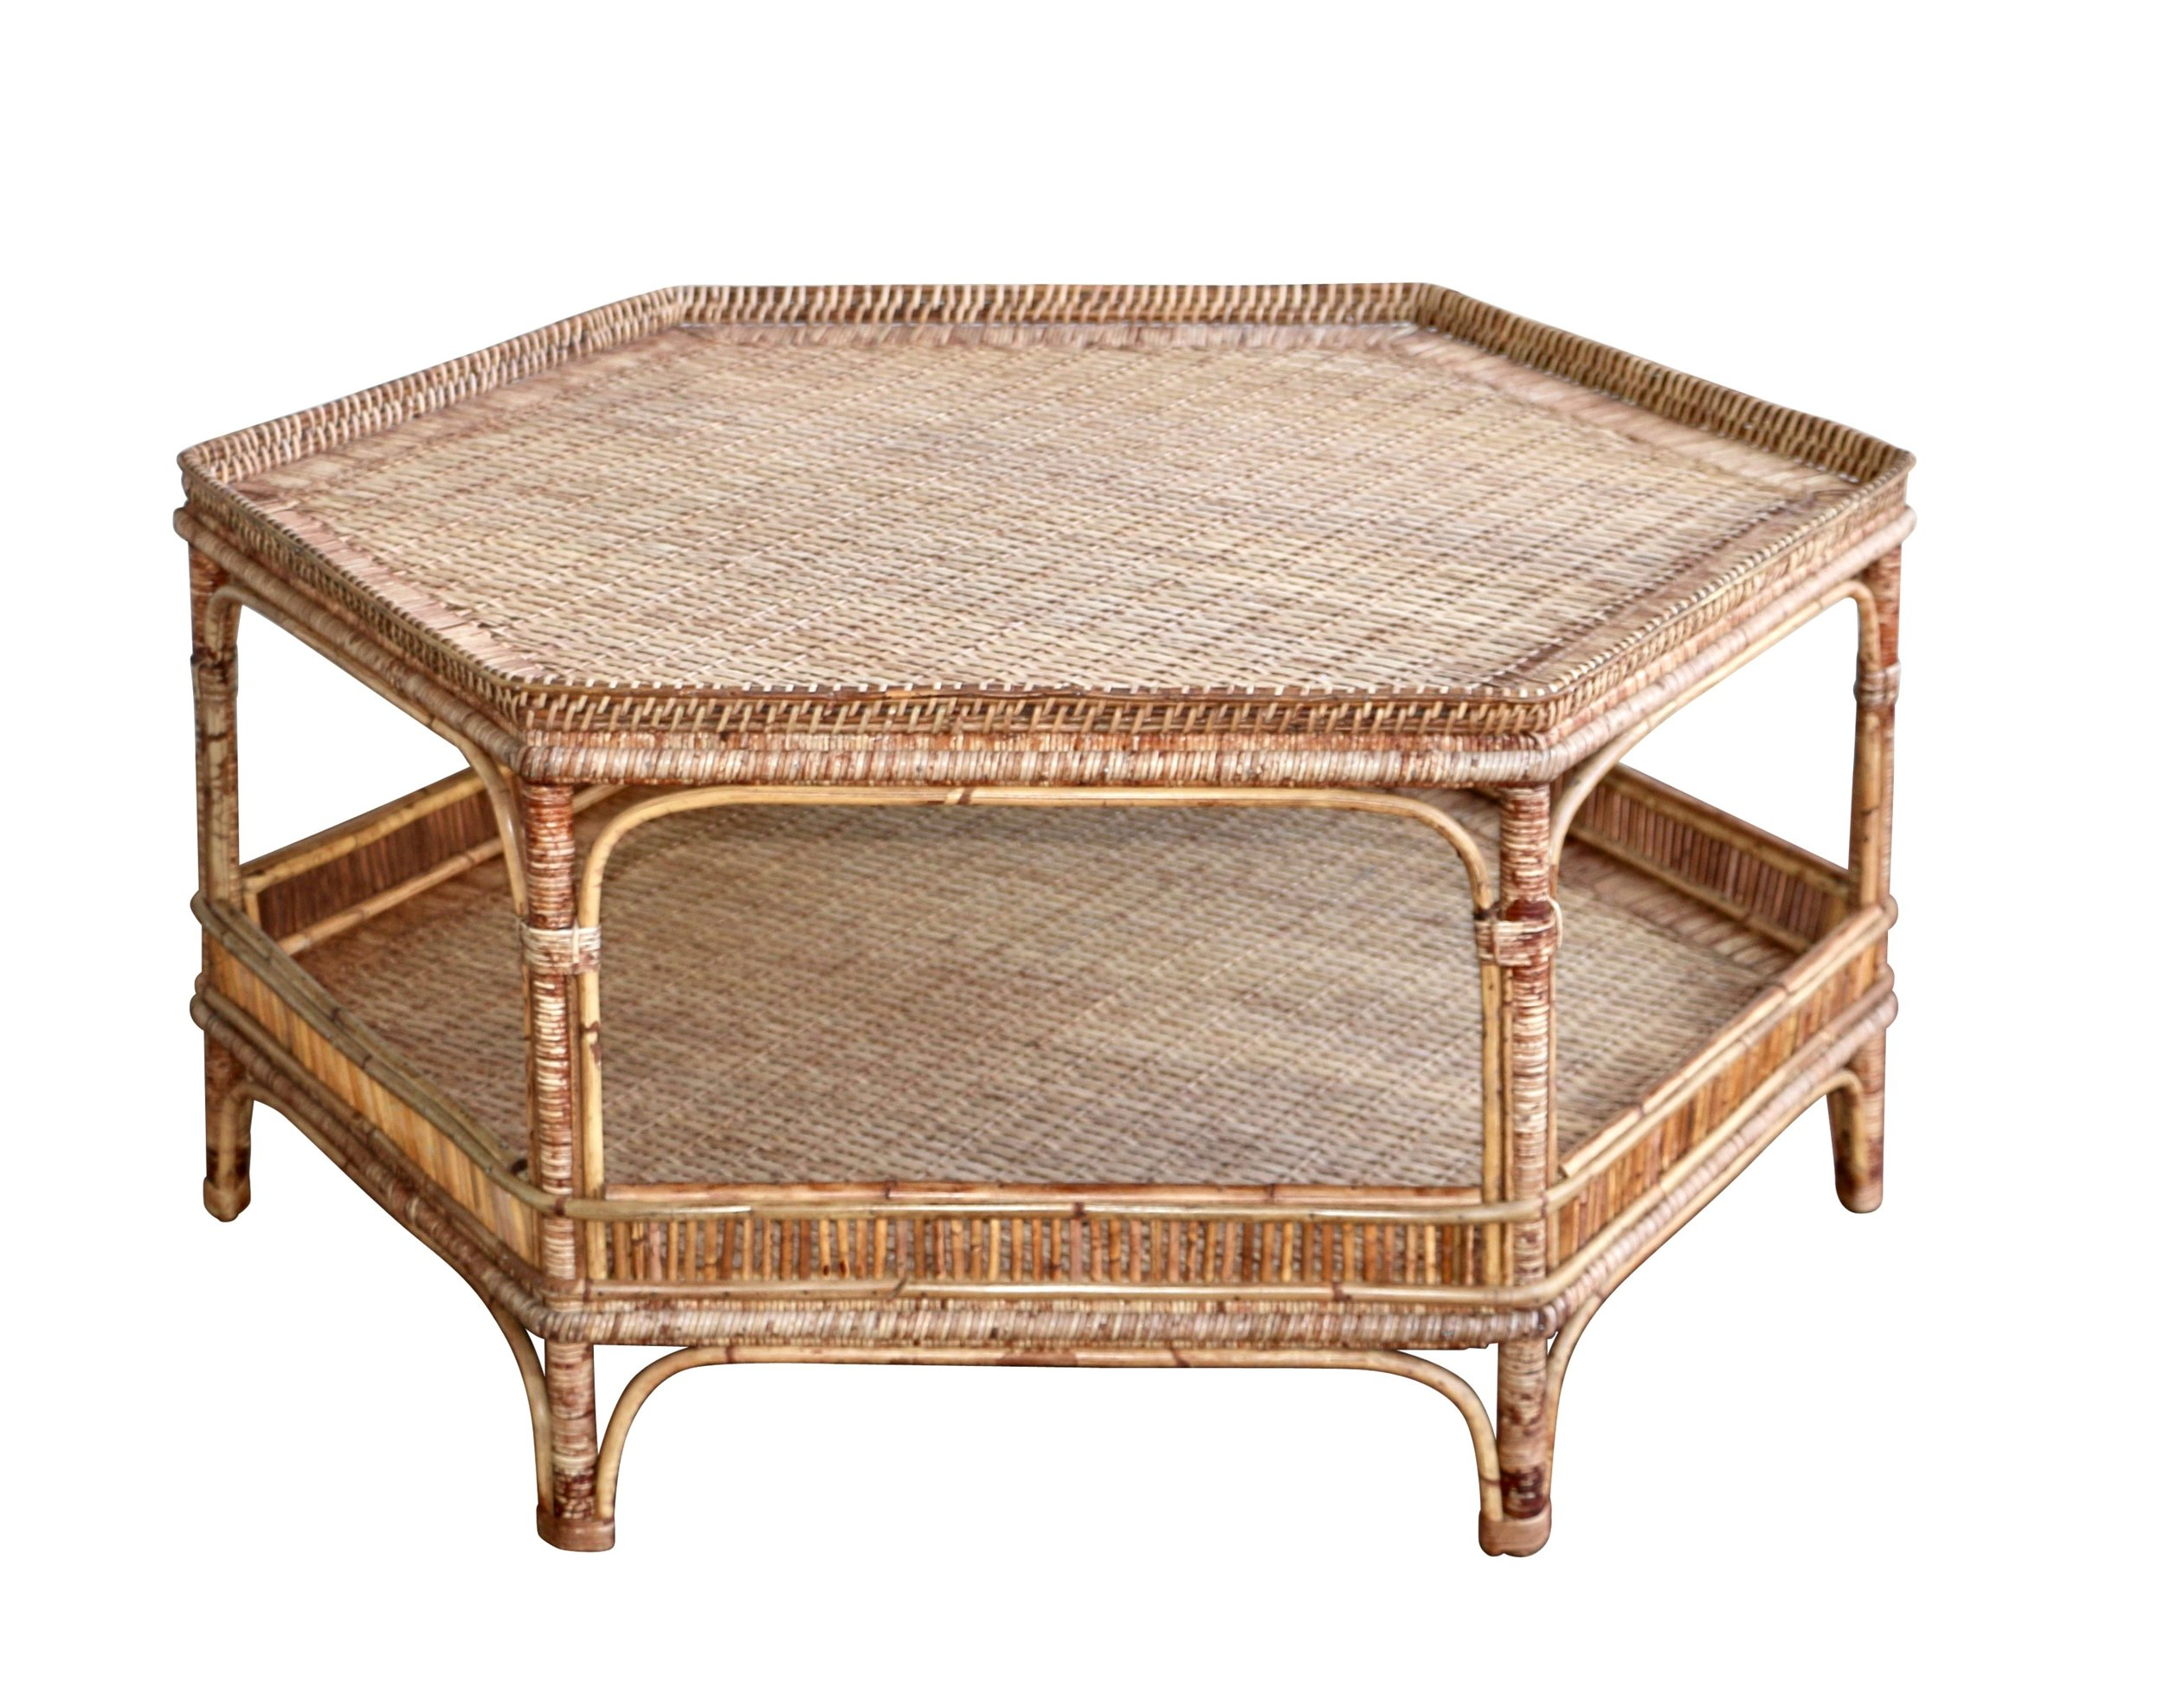 Custom-wicker-hexagonal-coffee-table copy.jpg